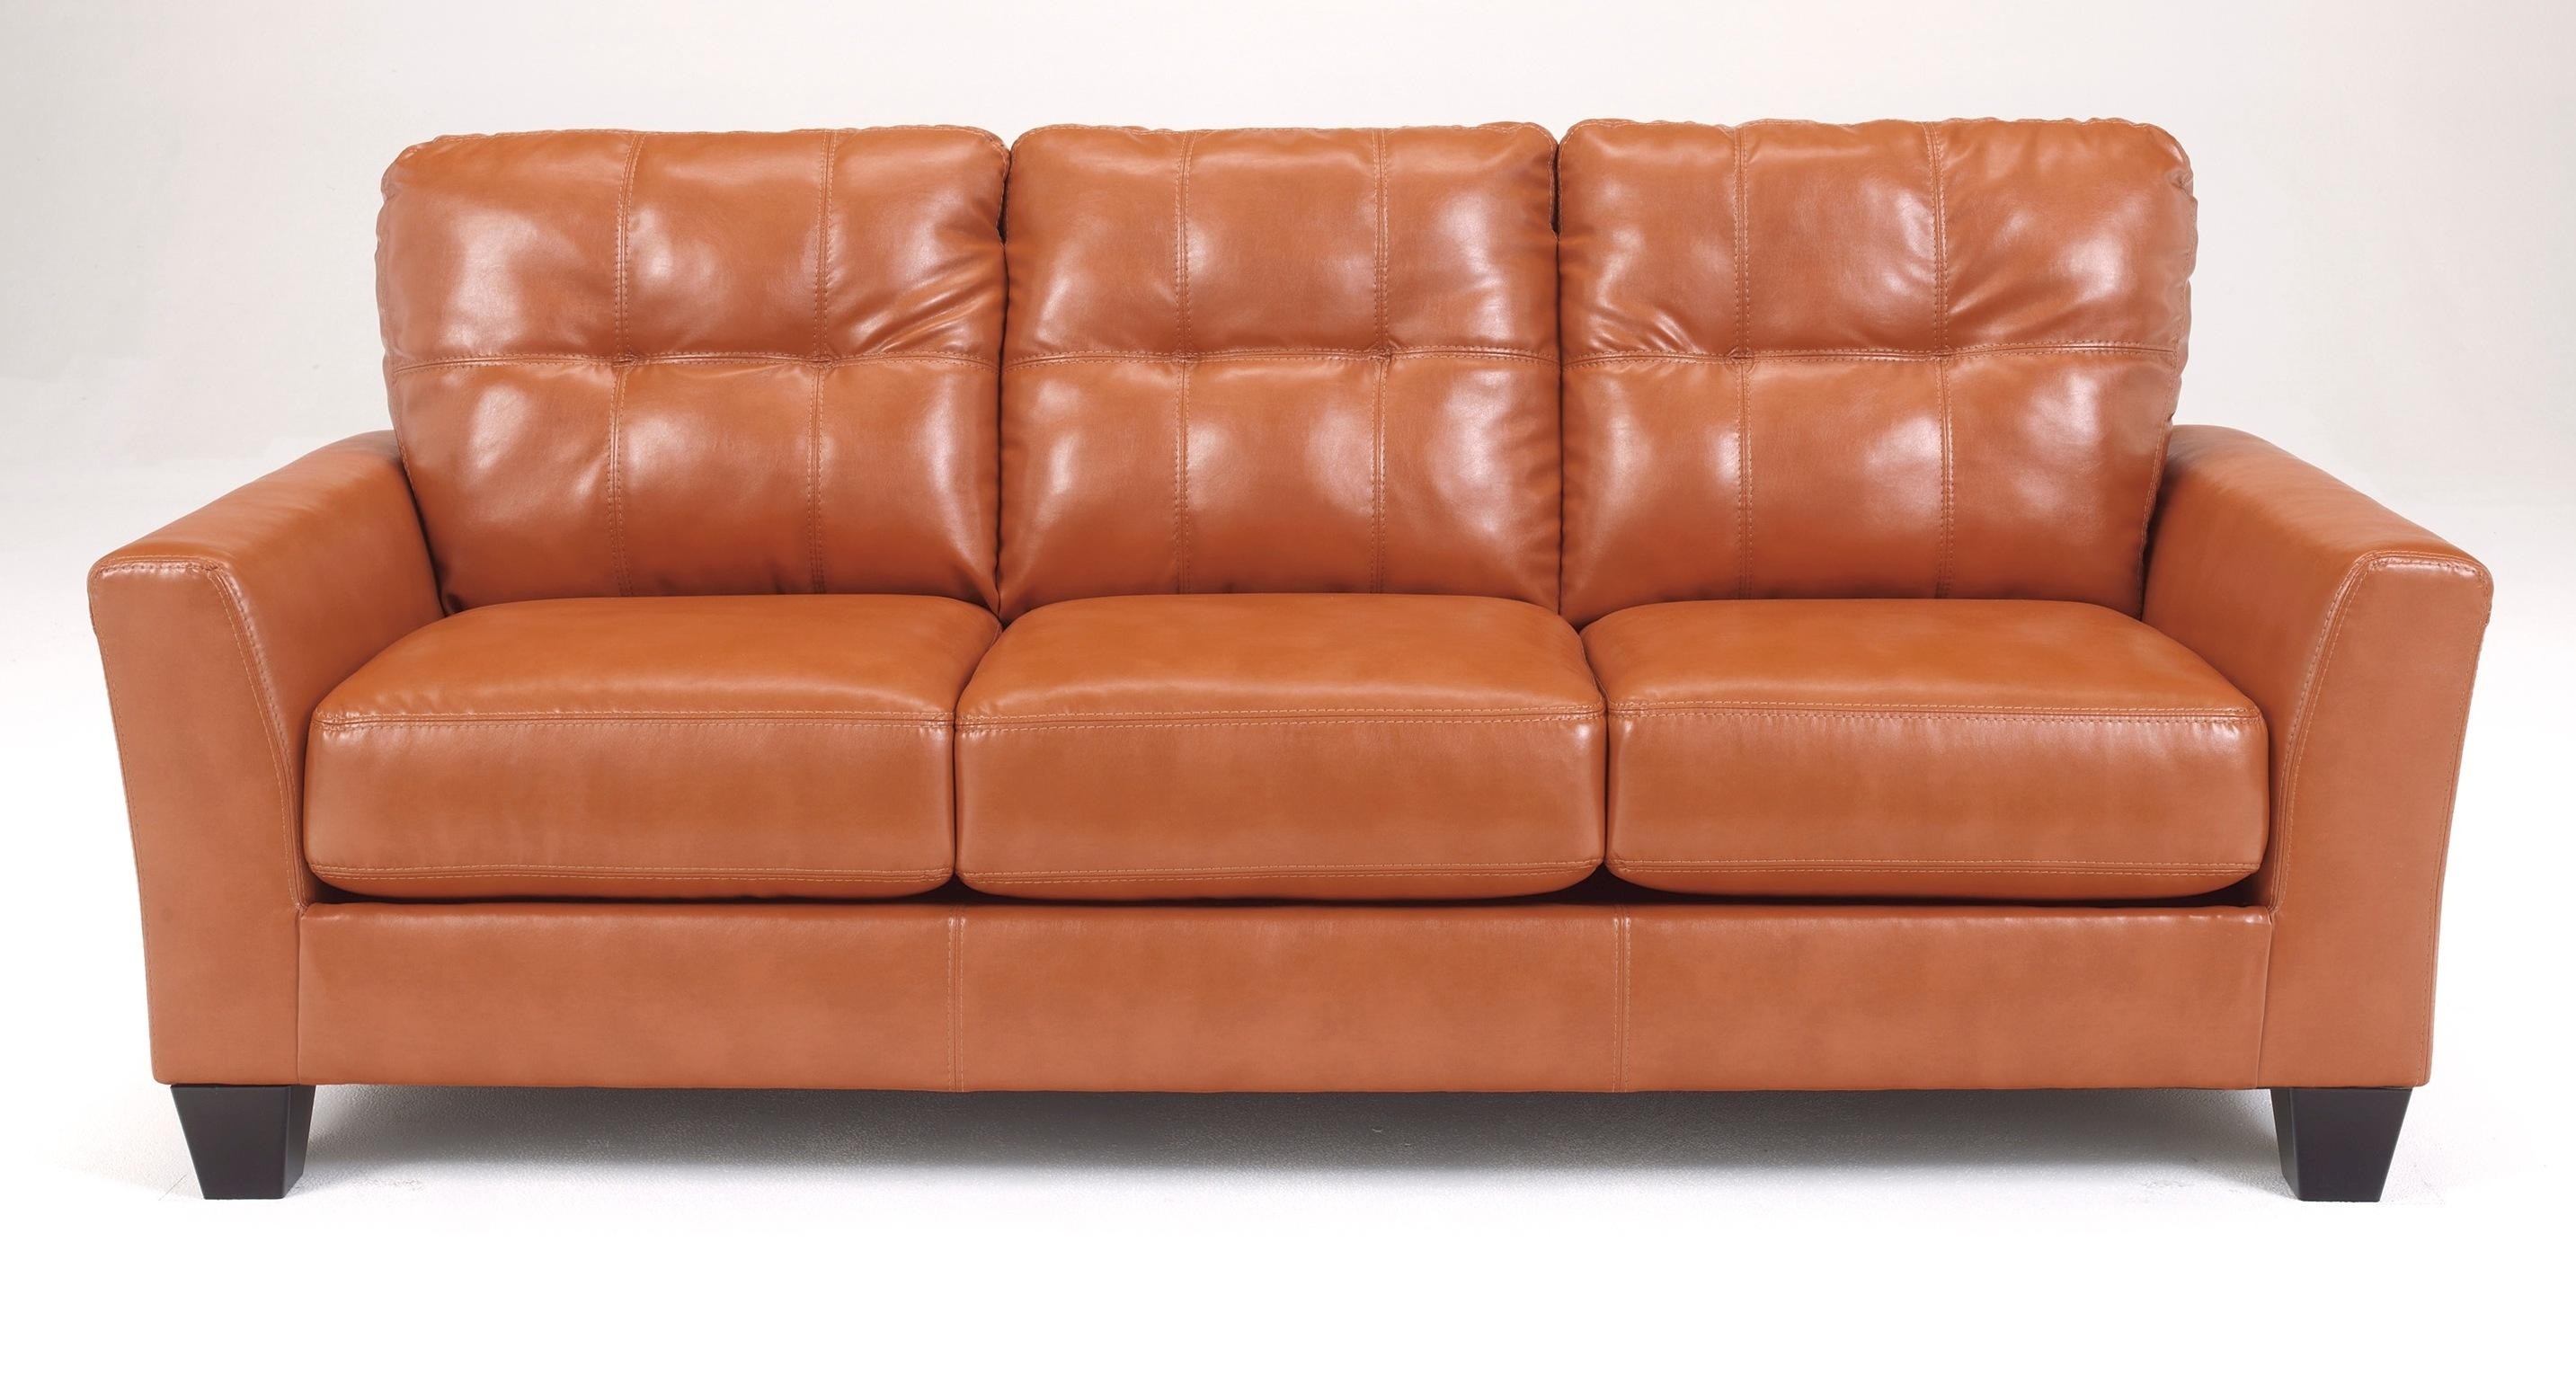 Sofas : Wonderful Distressed Leather Sofa Fabric Sofas Leather With Leather And Material Sofas (Image 20 of 21)